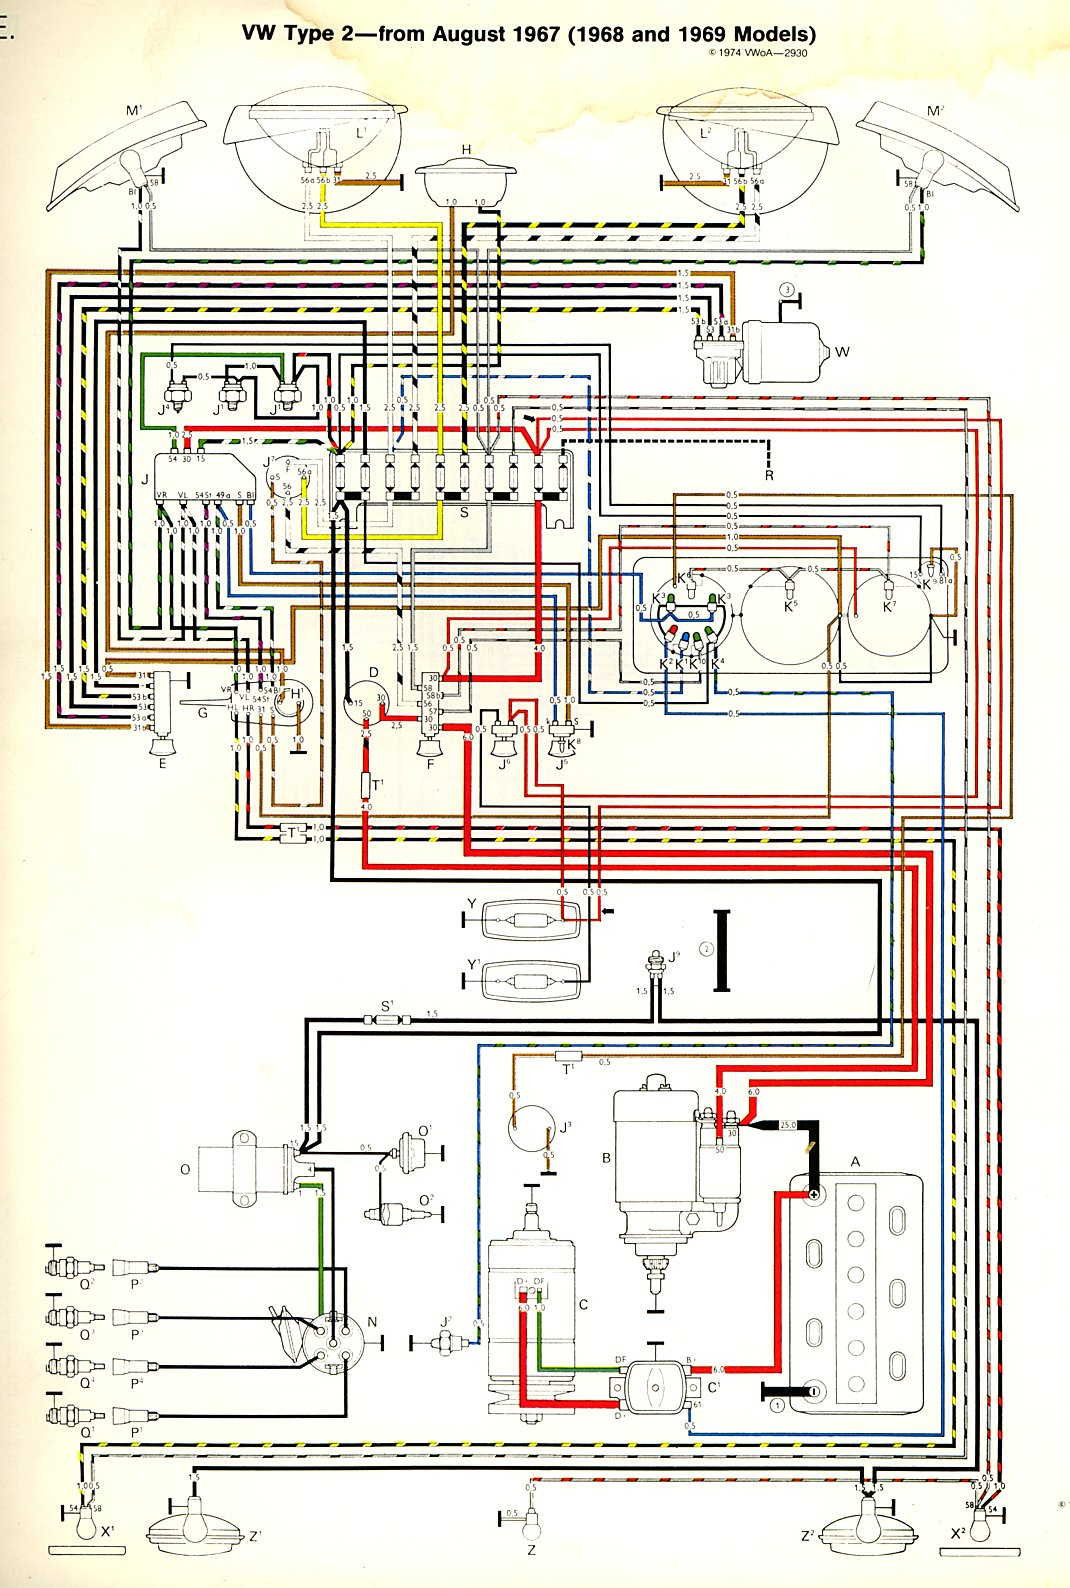 baybus_6869a 1968 69 bus wiring diagram thegoldenbug com 1971 vw bus wiring diagram at gsmportal.co